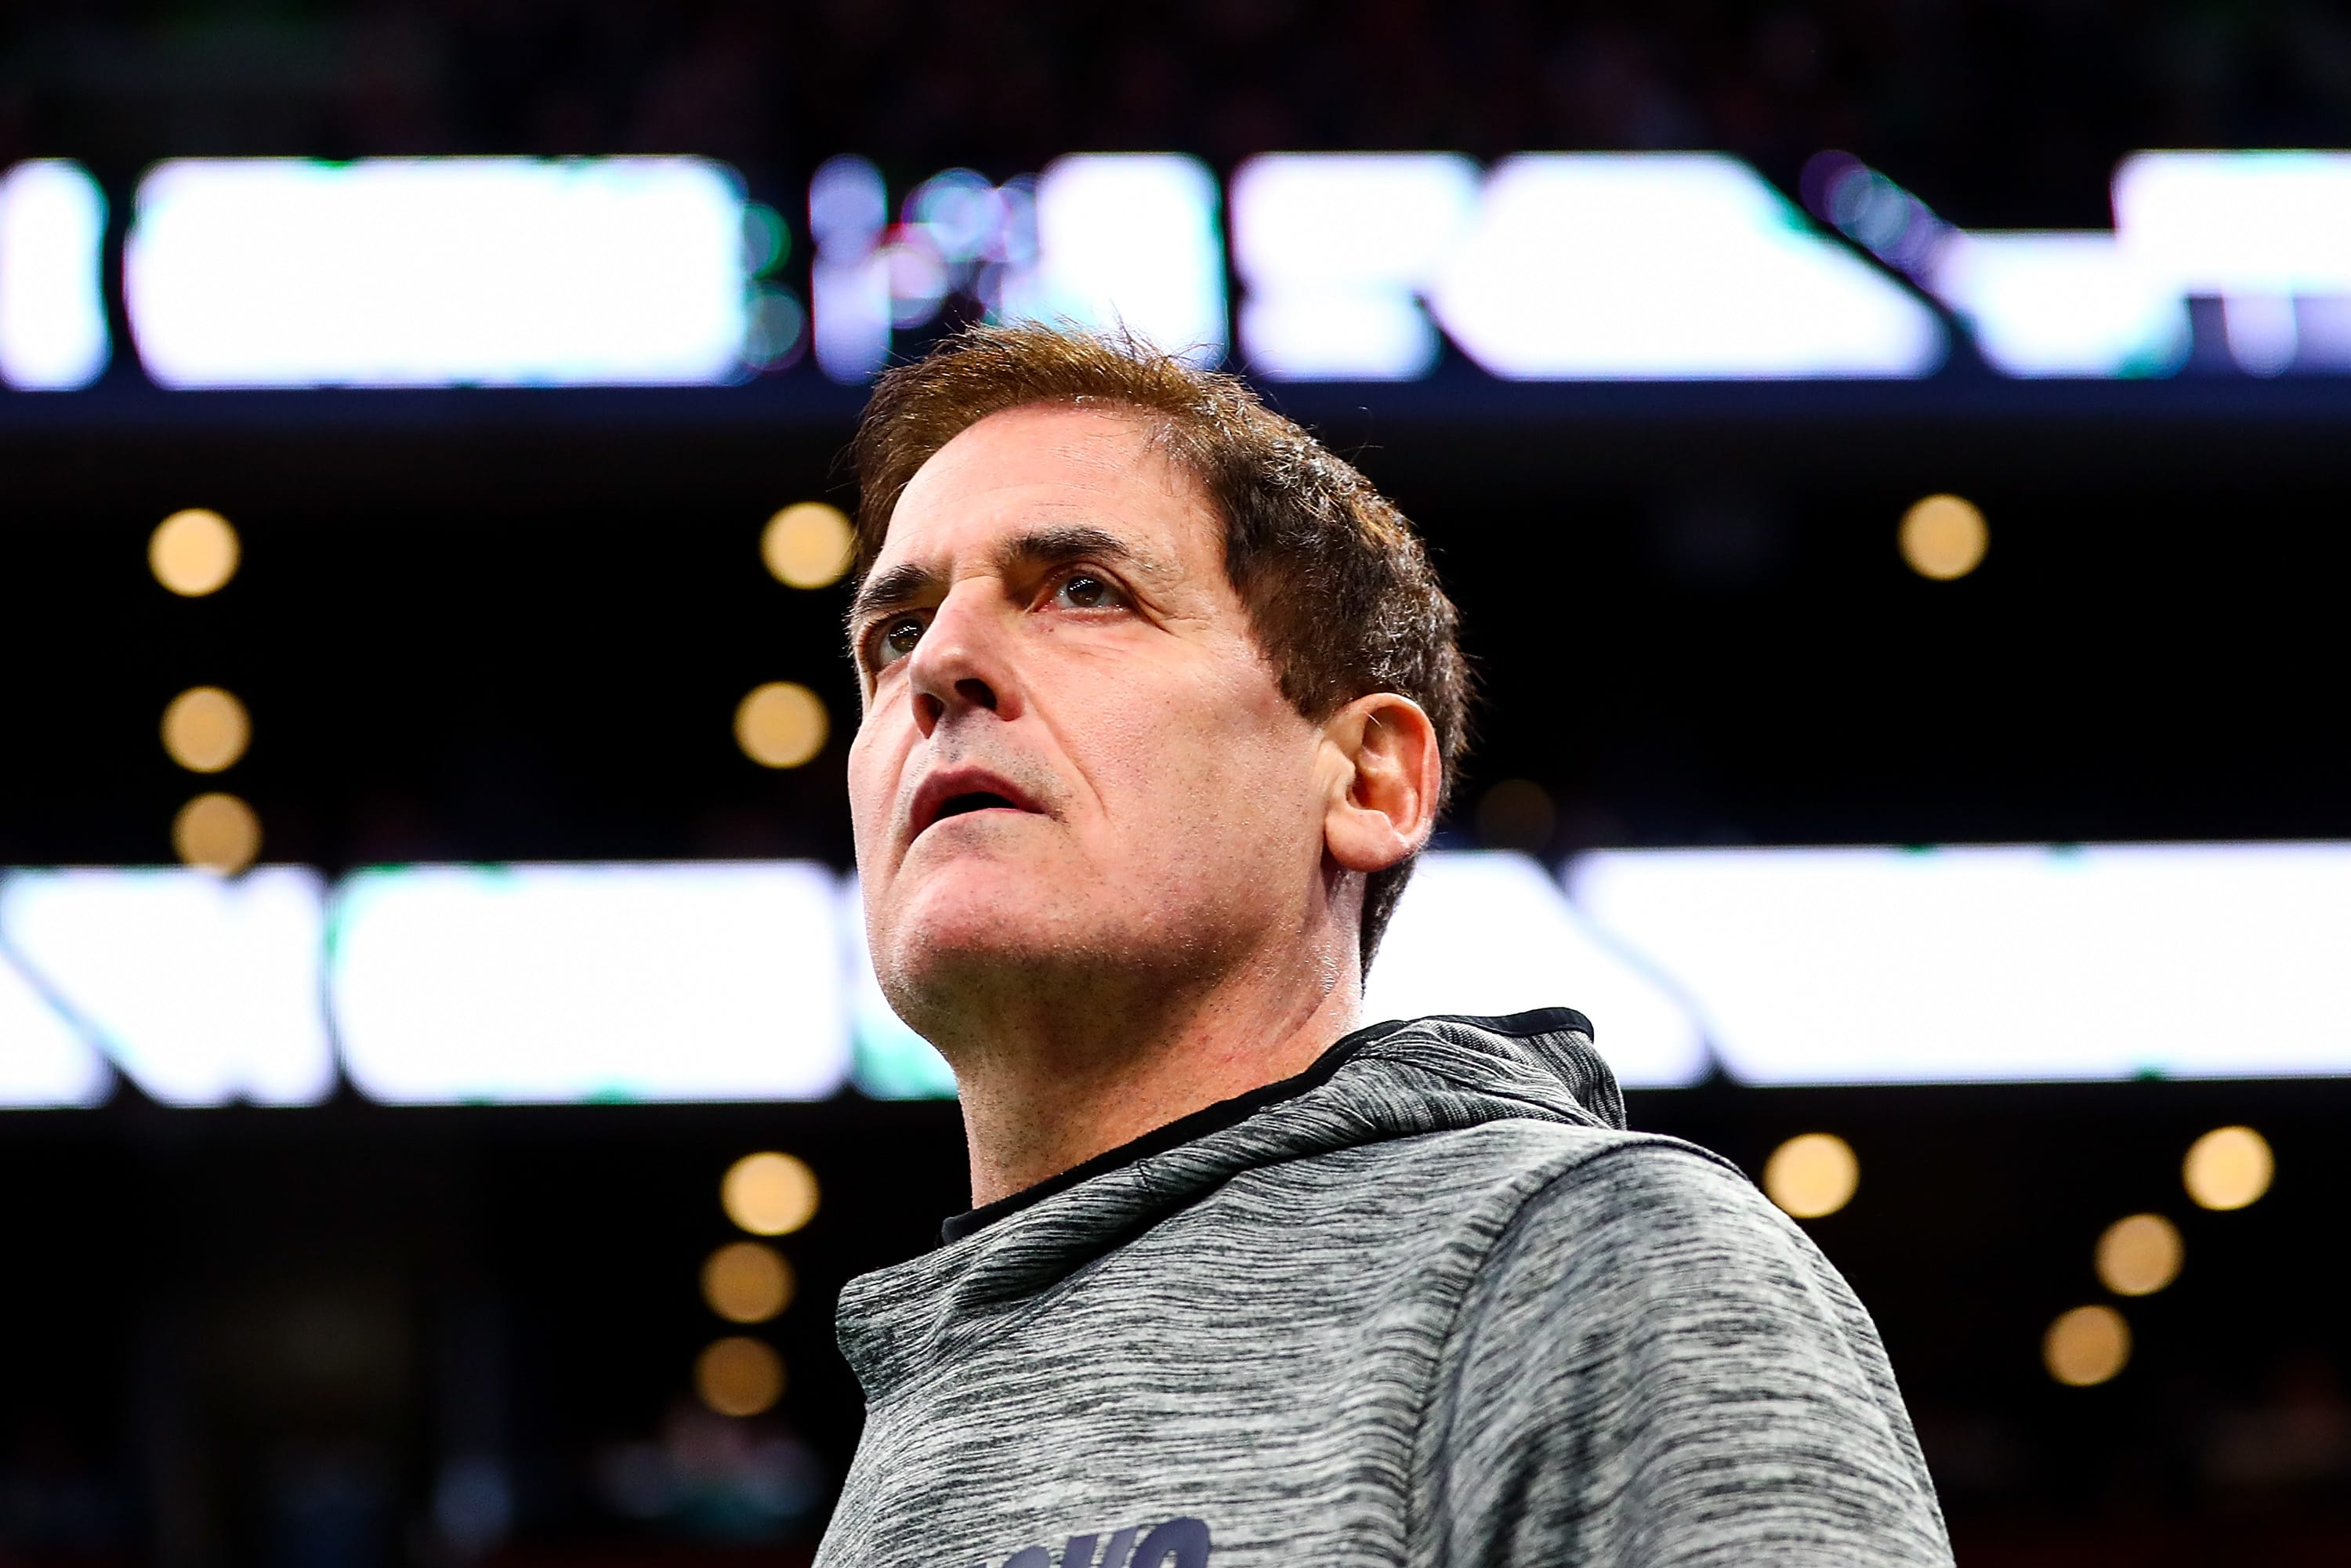 Mark Cuban has been at the forefront of the wave of interest in blockchain tech and NFTs, or non-fungible tokens, which he says is